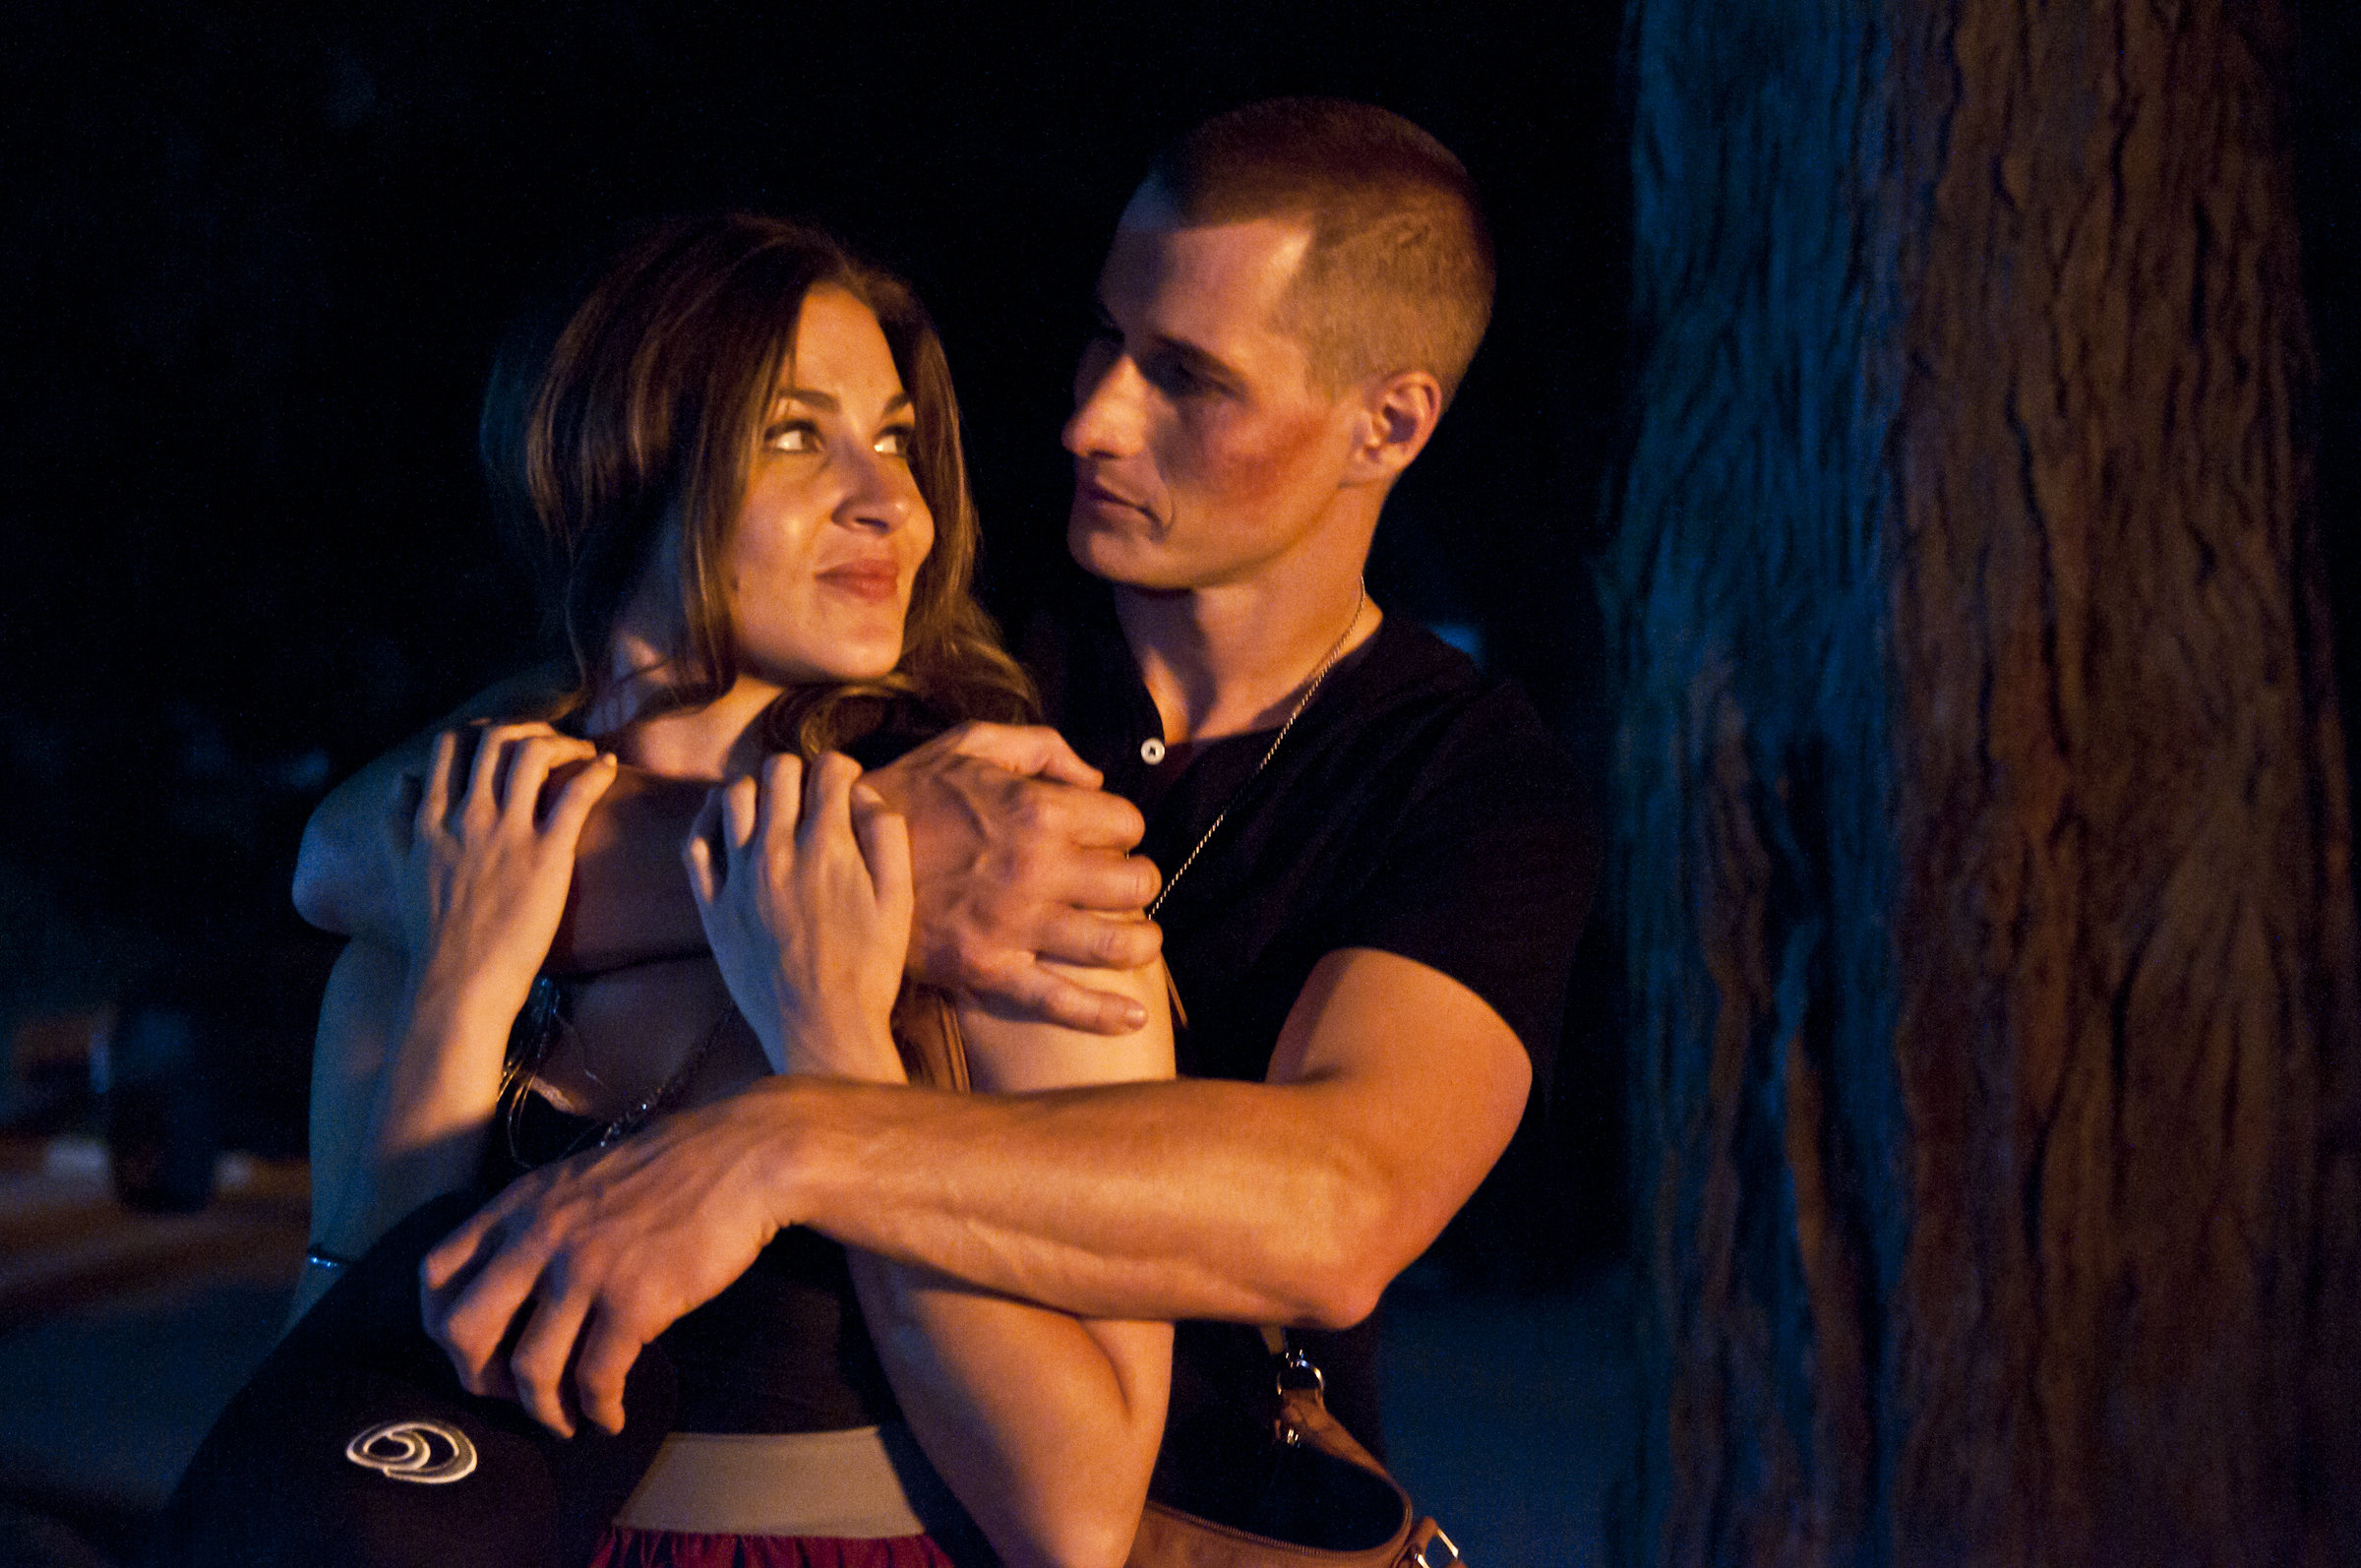 Still of Brendan Fehr and Shanda Bezic in Only I...